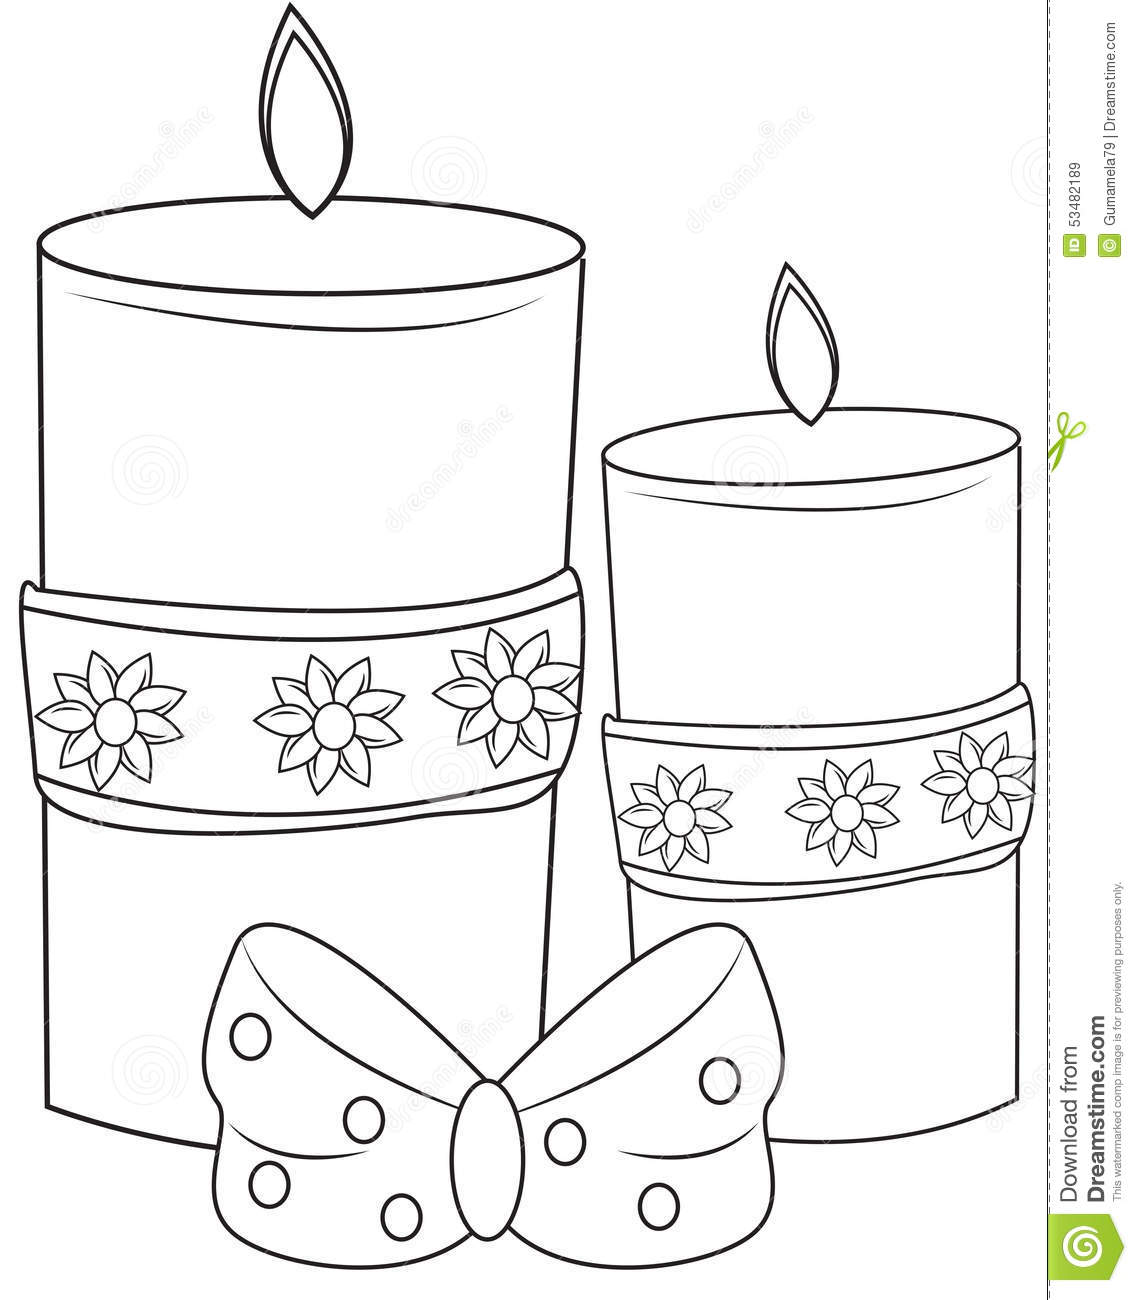 1137x1300 Candle Coloring Page